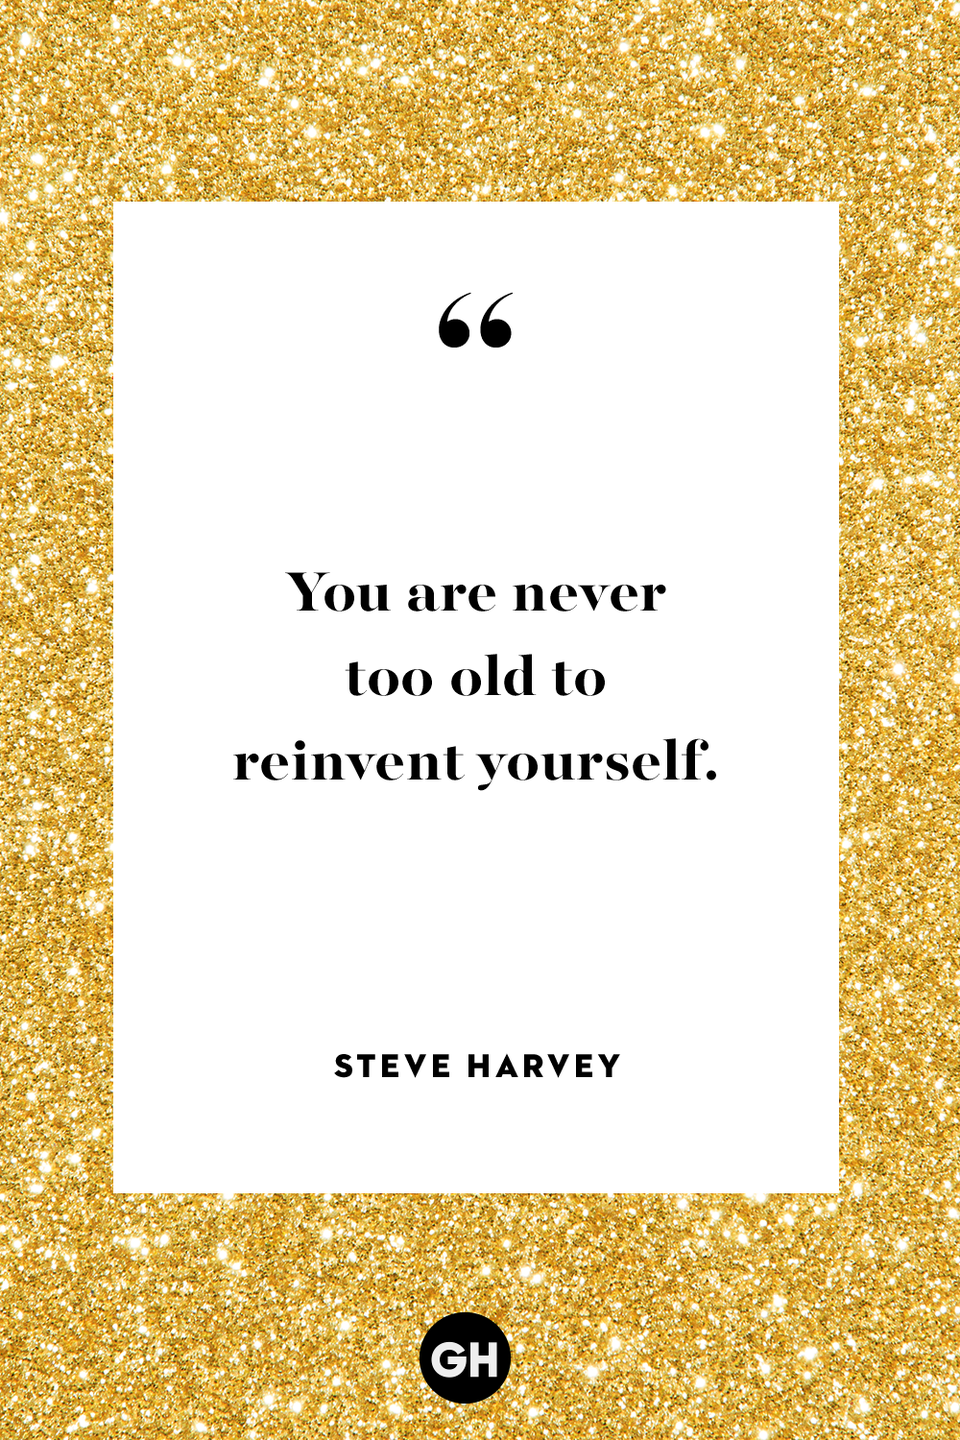 <p>You are never too old to reinvent yourself.</p>